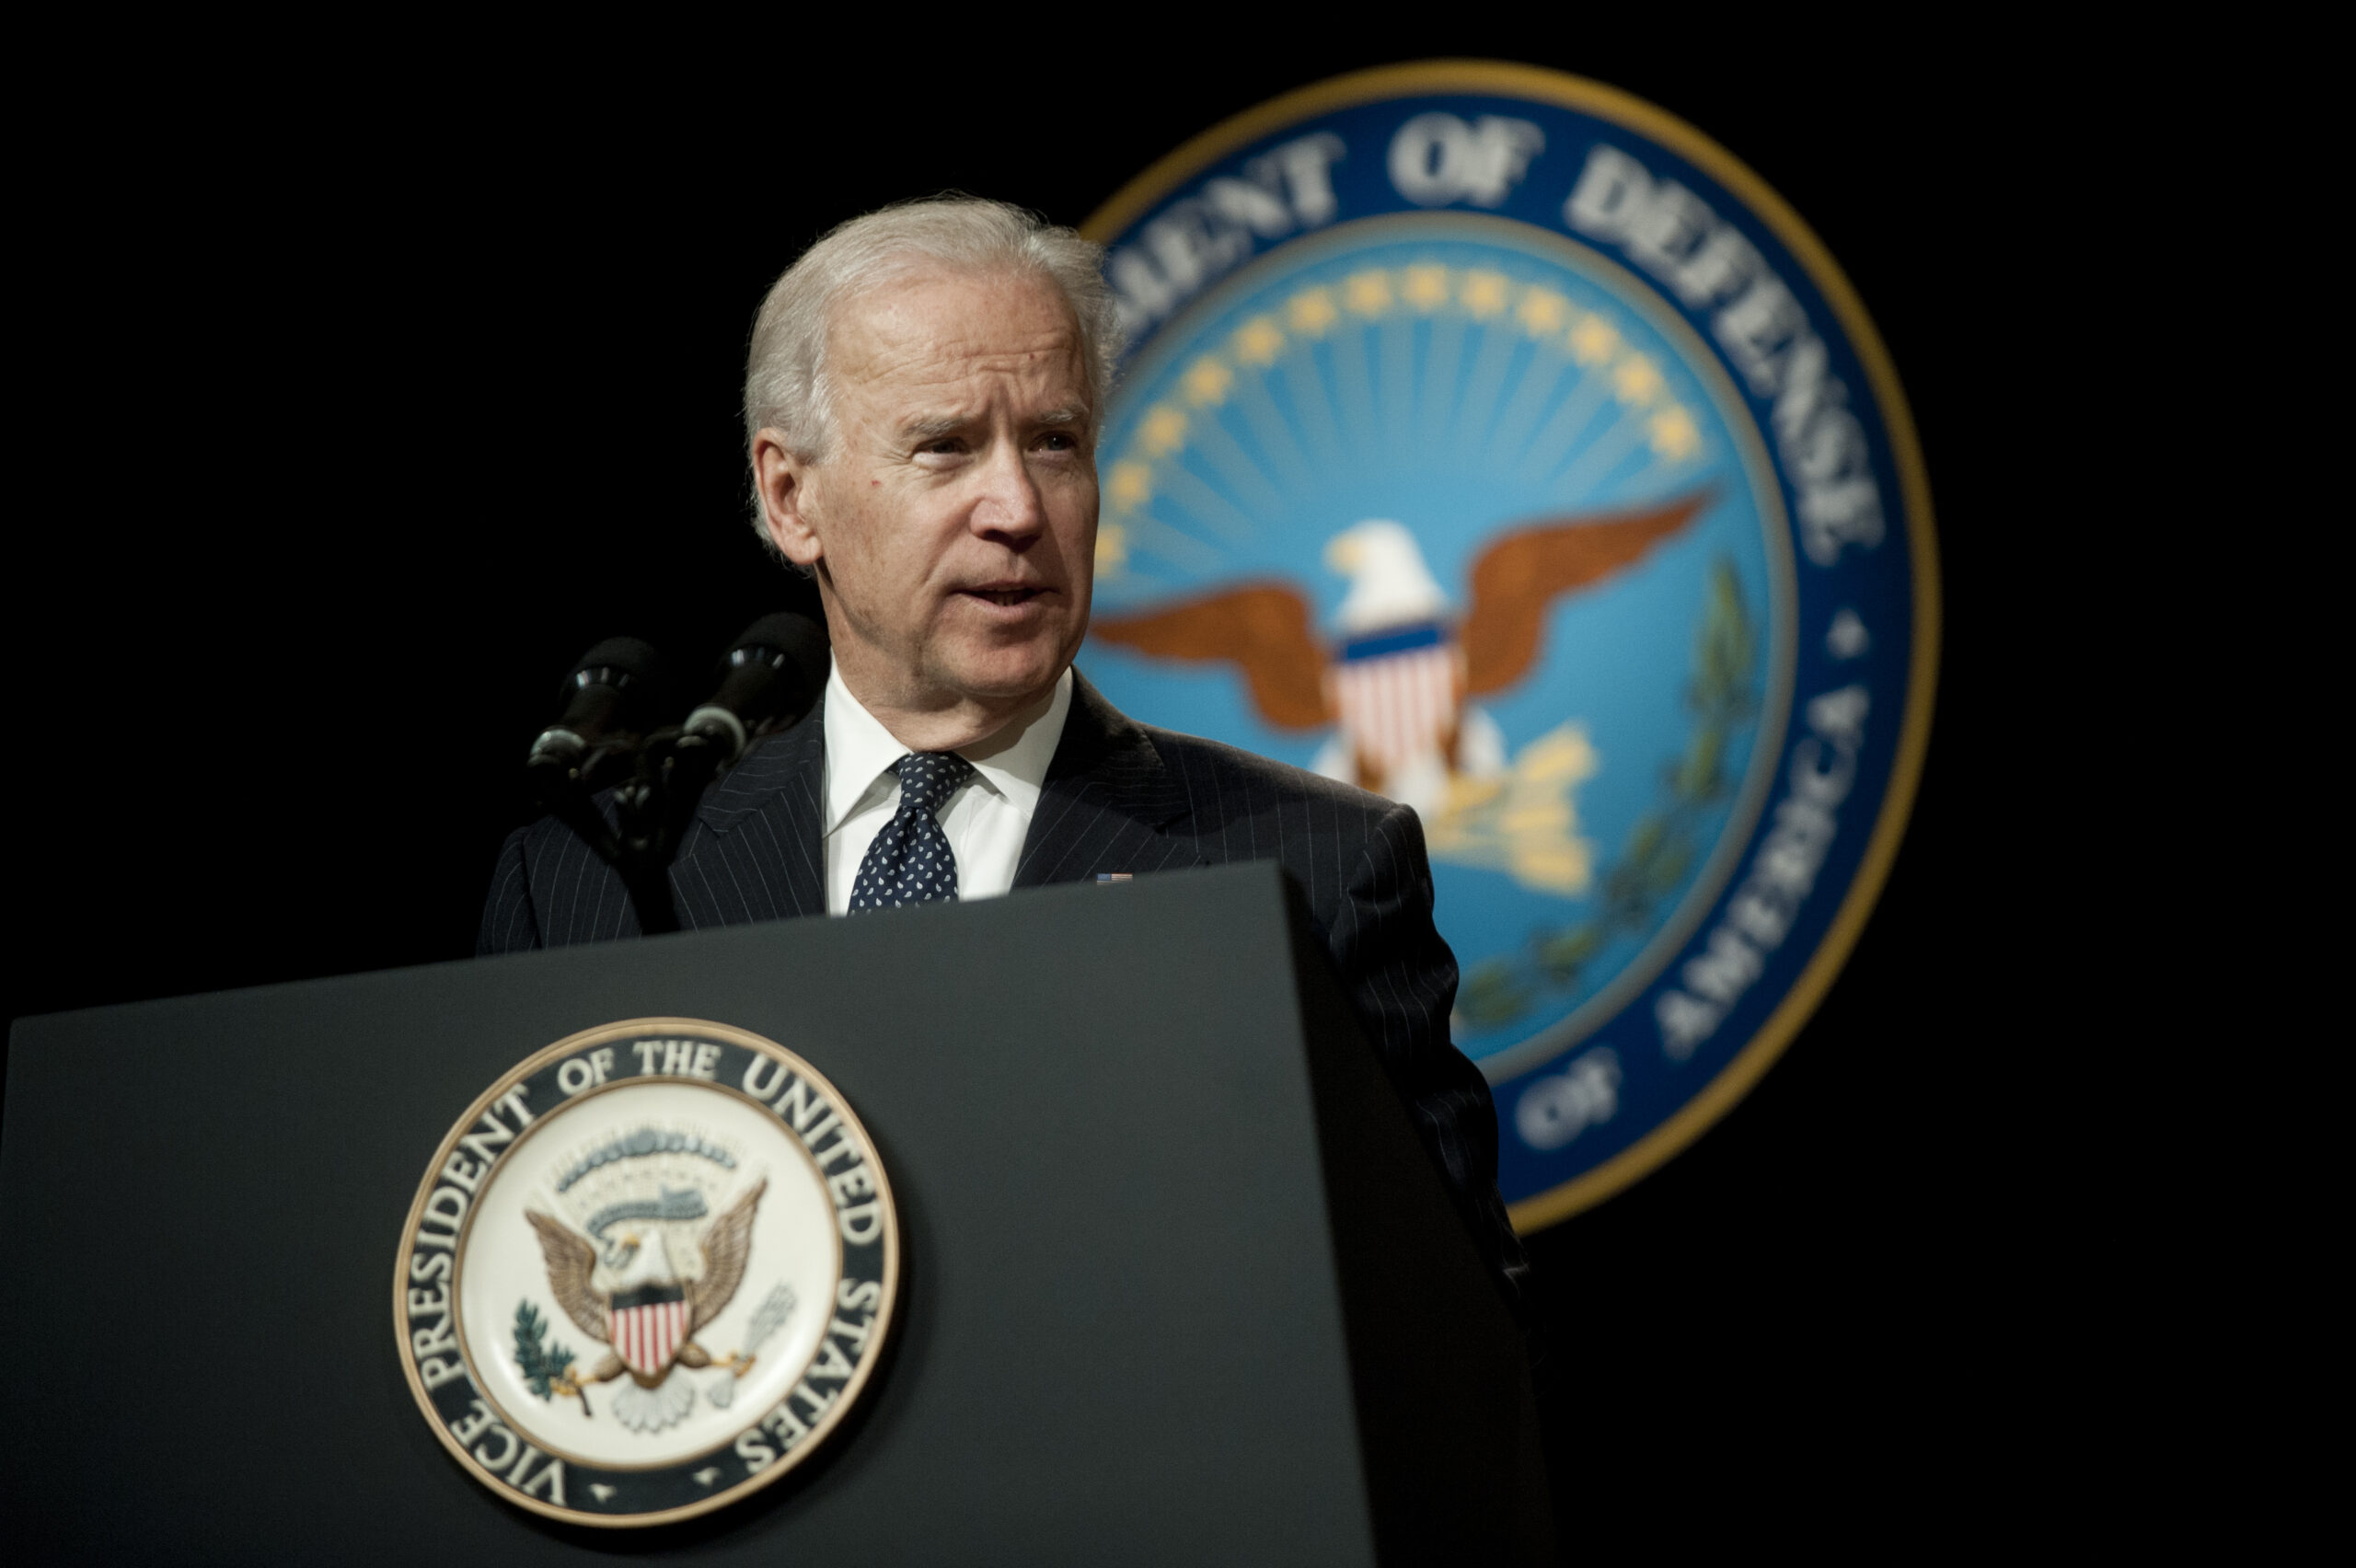 Pentagon Chief Orders Pause in Cooperation with Biden Transition